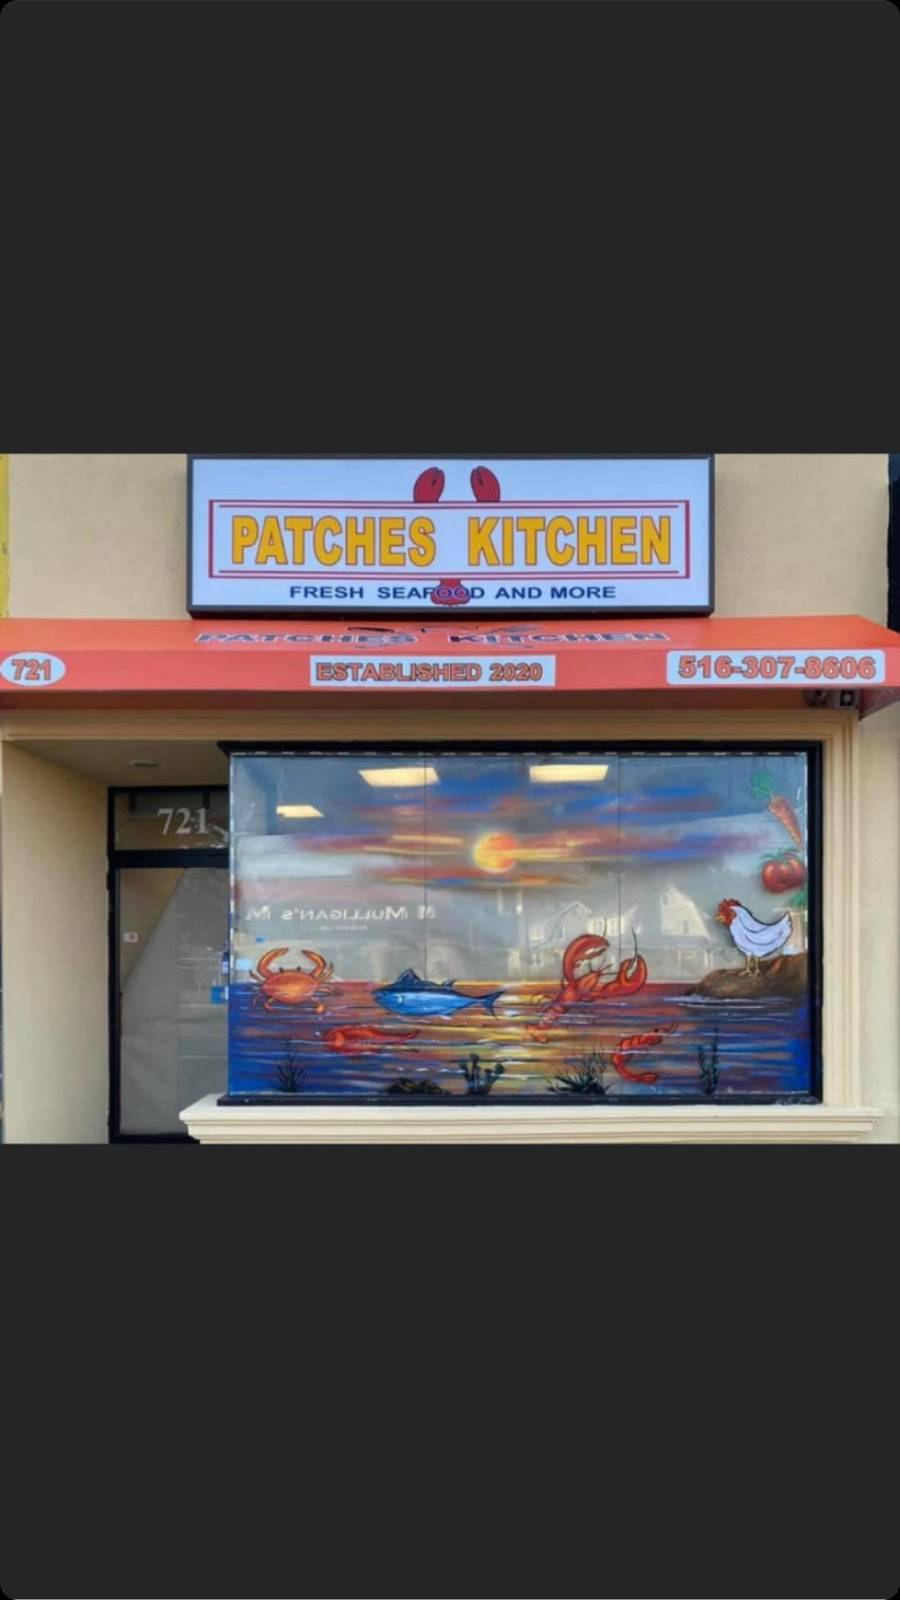 Patches Kitchen | restaurant | 721 Fulton Ave, Hempstead, NY 11550, USA | 5163078606 OR +1 516-307-8606